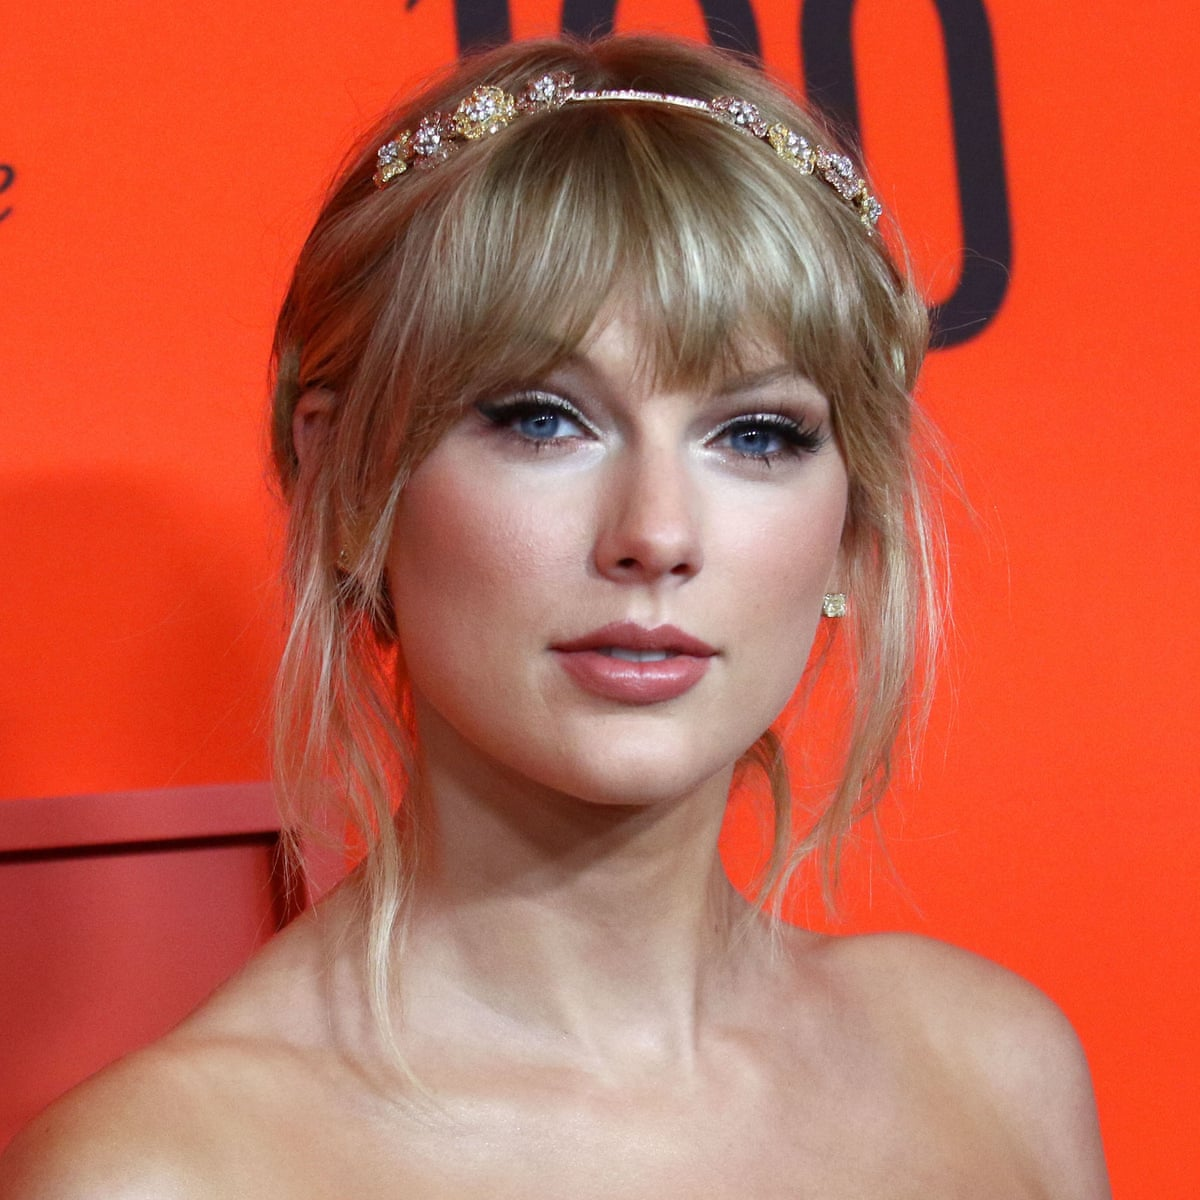 Taylor Swift Disowns New Live Album Calling It Shameless Greed Taylor Swift The Guardian